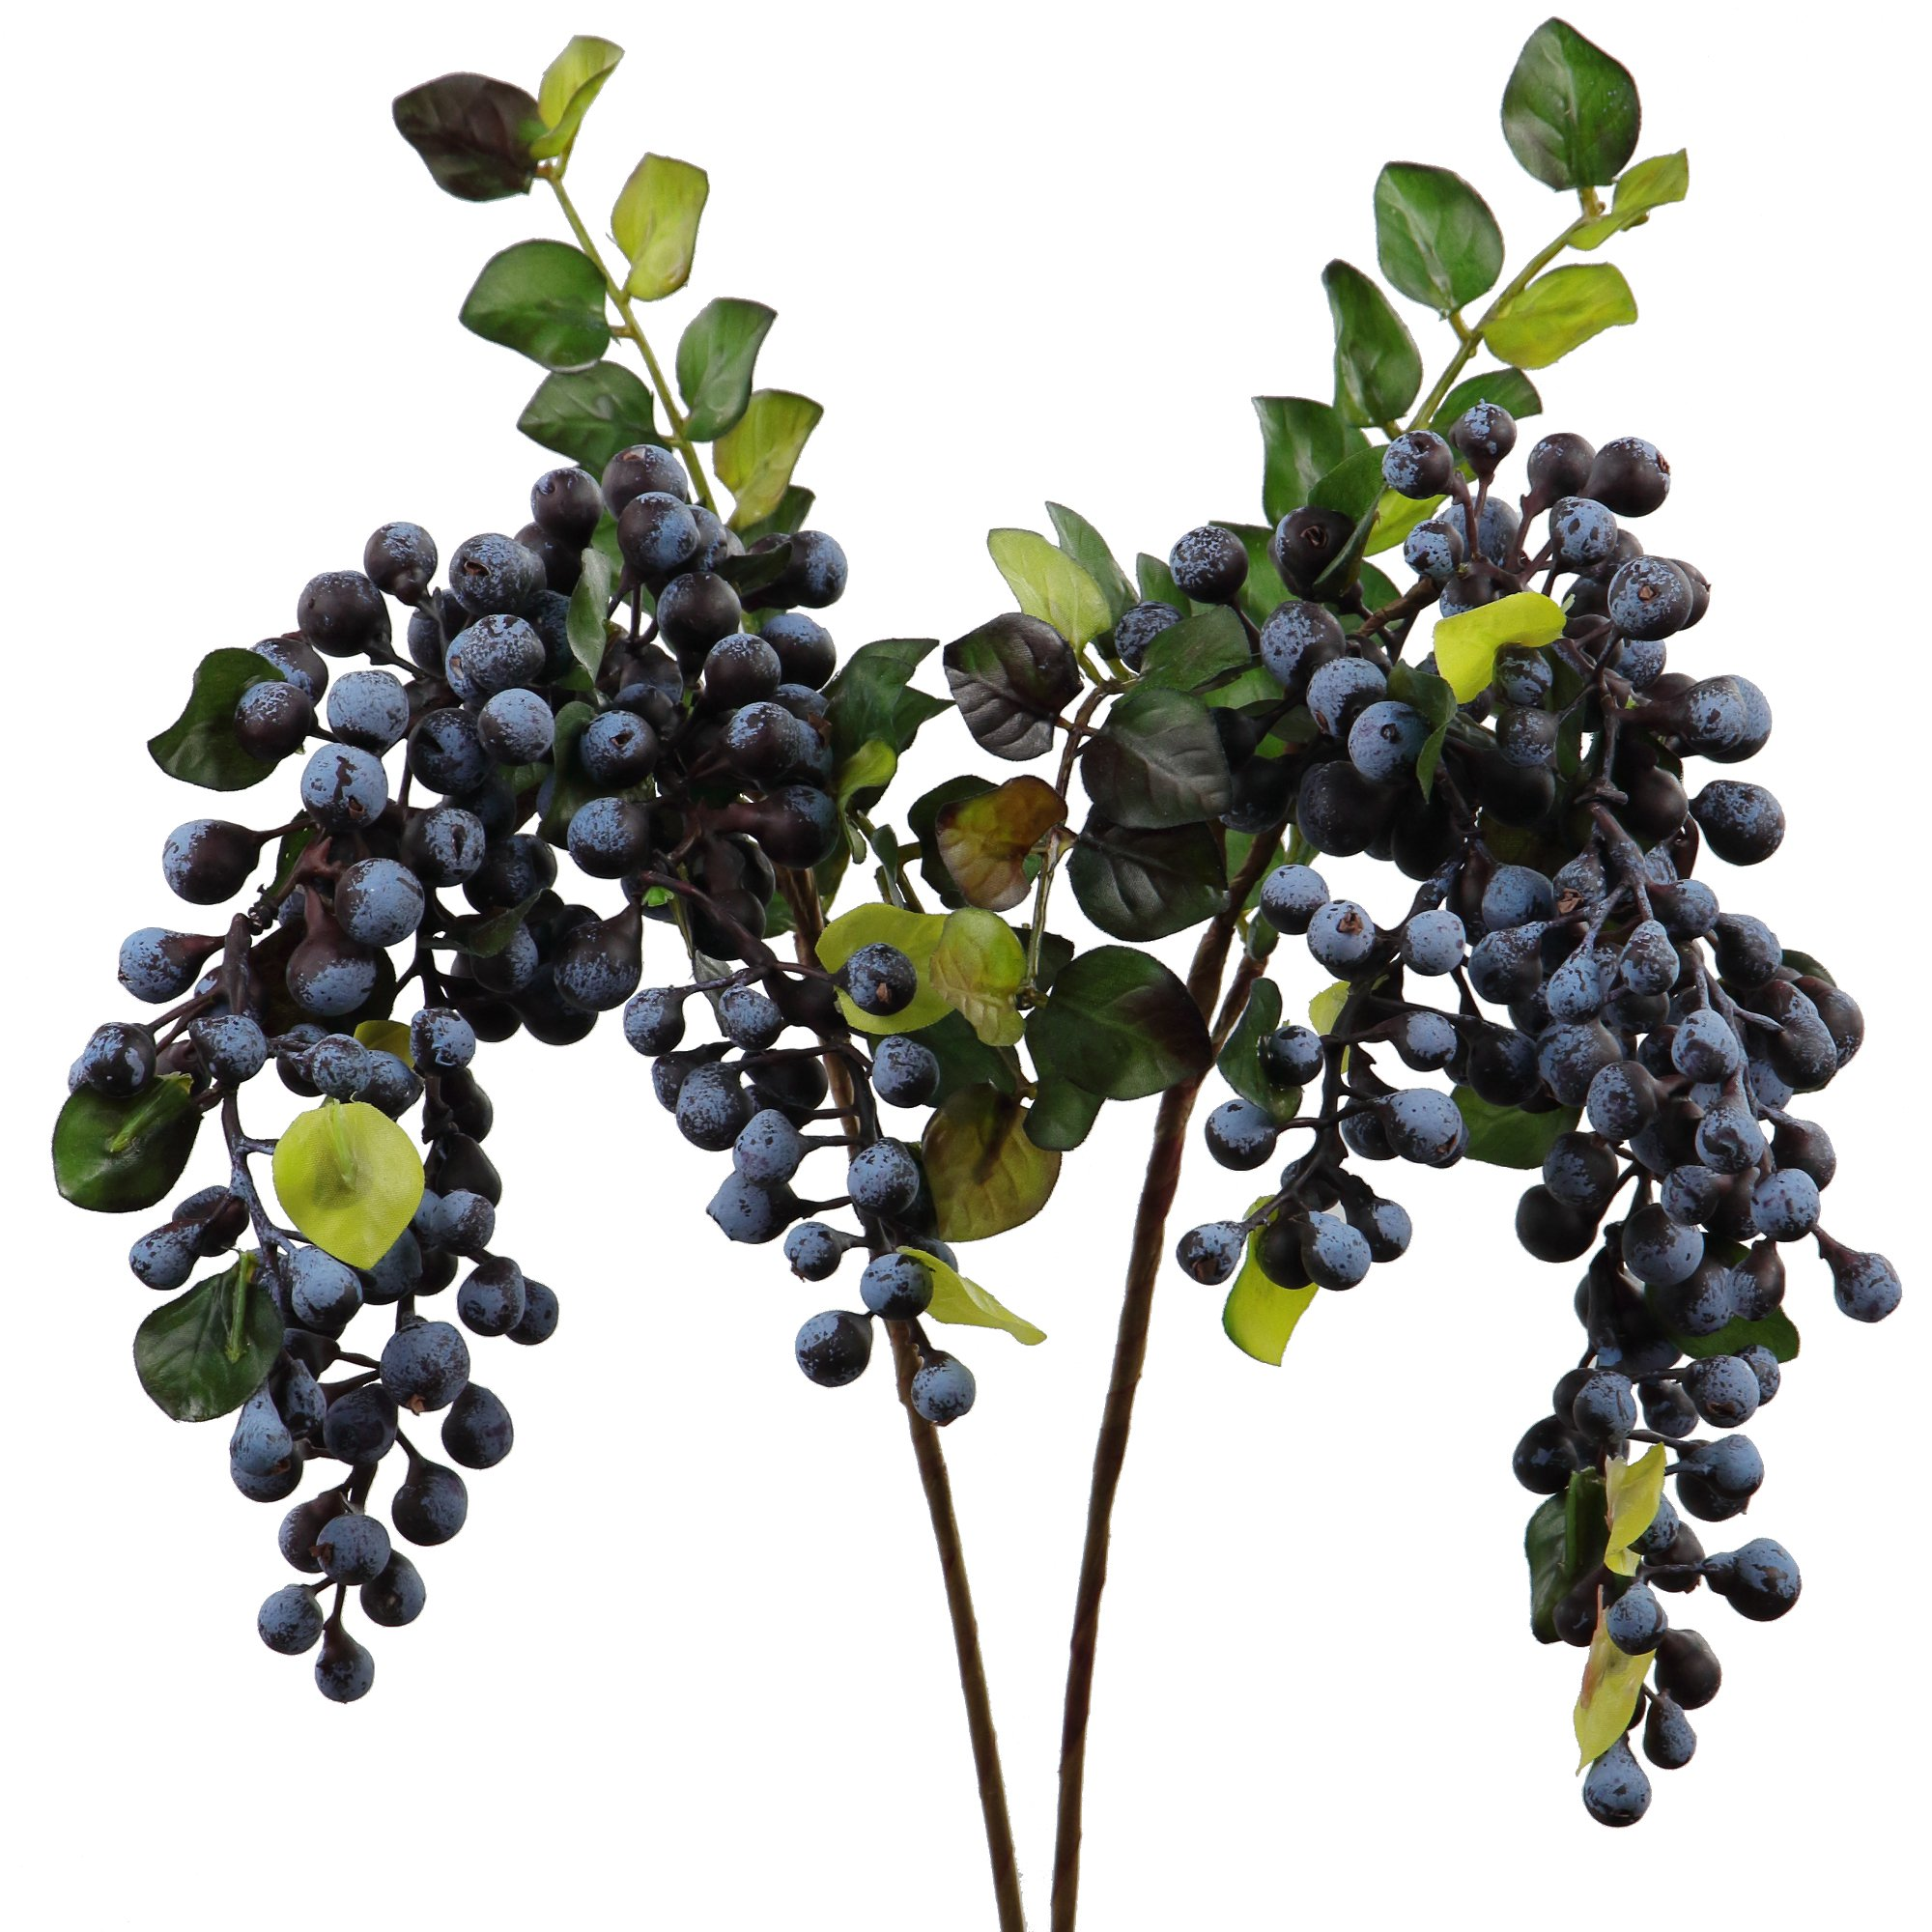 Rinlong Artificial Berries Hanging Spray Frosted for Flowers Arrangement Home Hotel Decor 2pcs per Pack (Navy Blue)